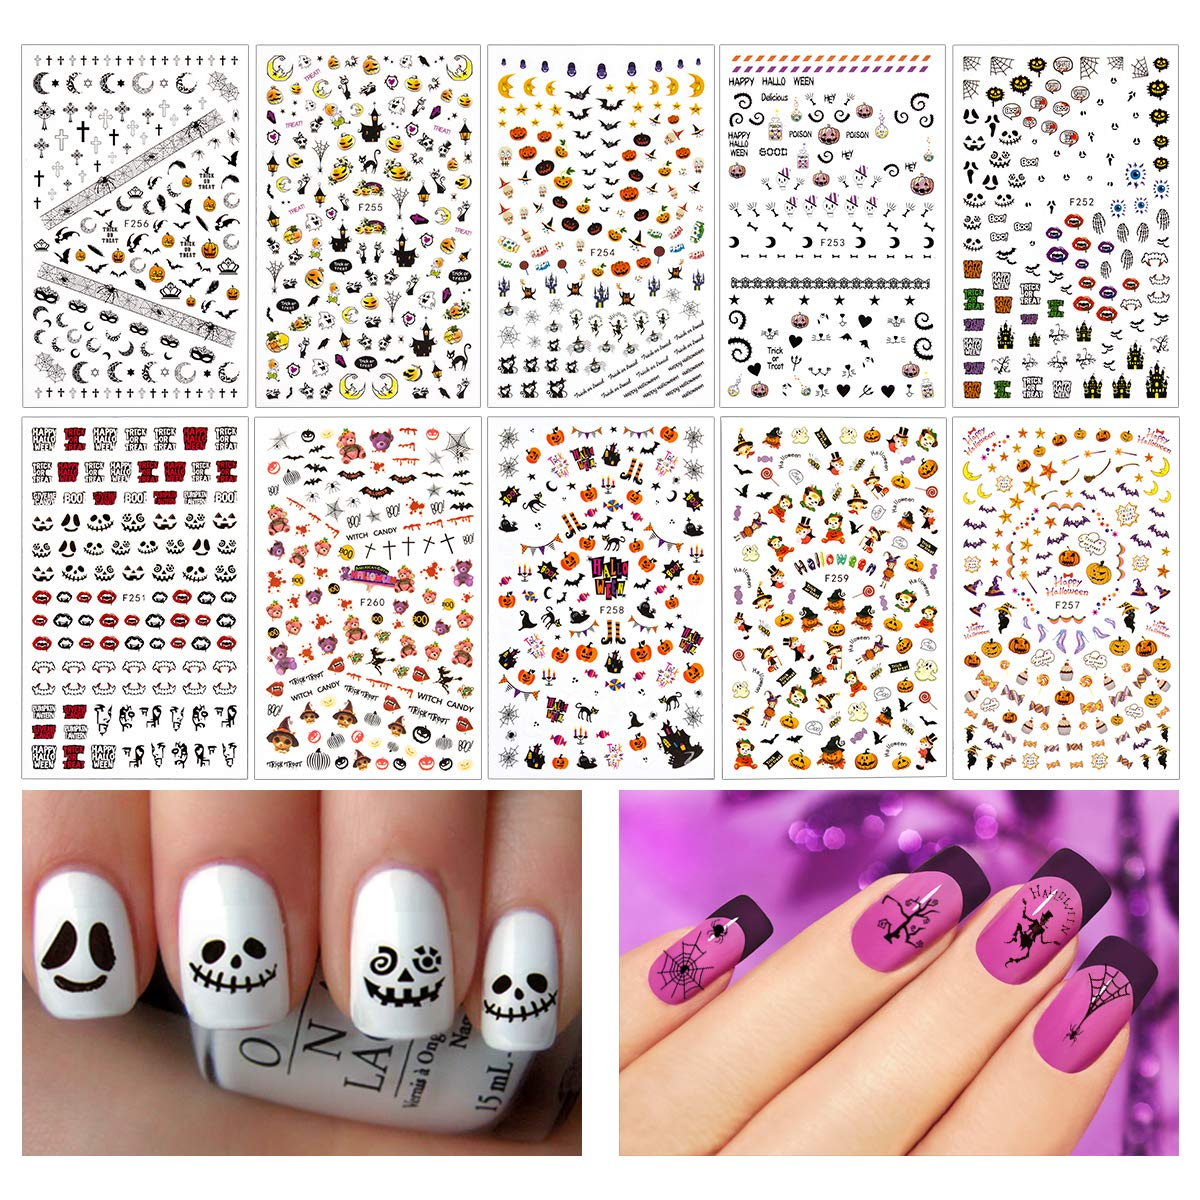 Madholly 1200+ Pieces 3D Design Self Adhesive Halloween Nail Art Stickers Decals Tattoo Manicure Decoration for Fingernails Toenails Nail Tips